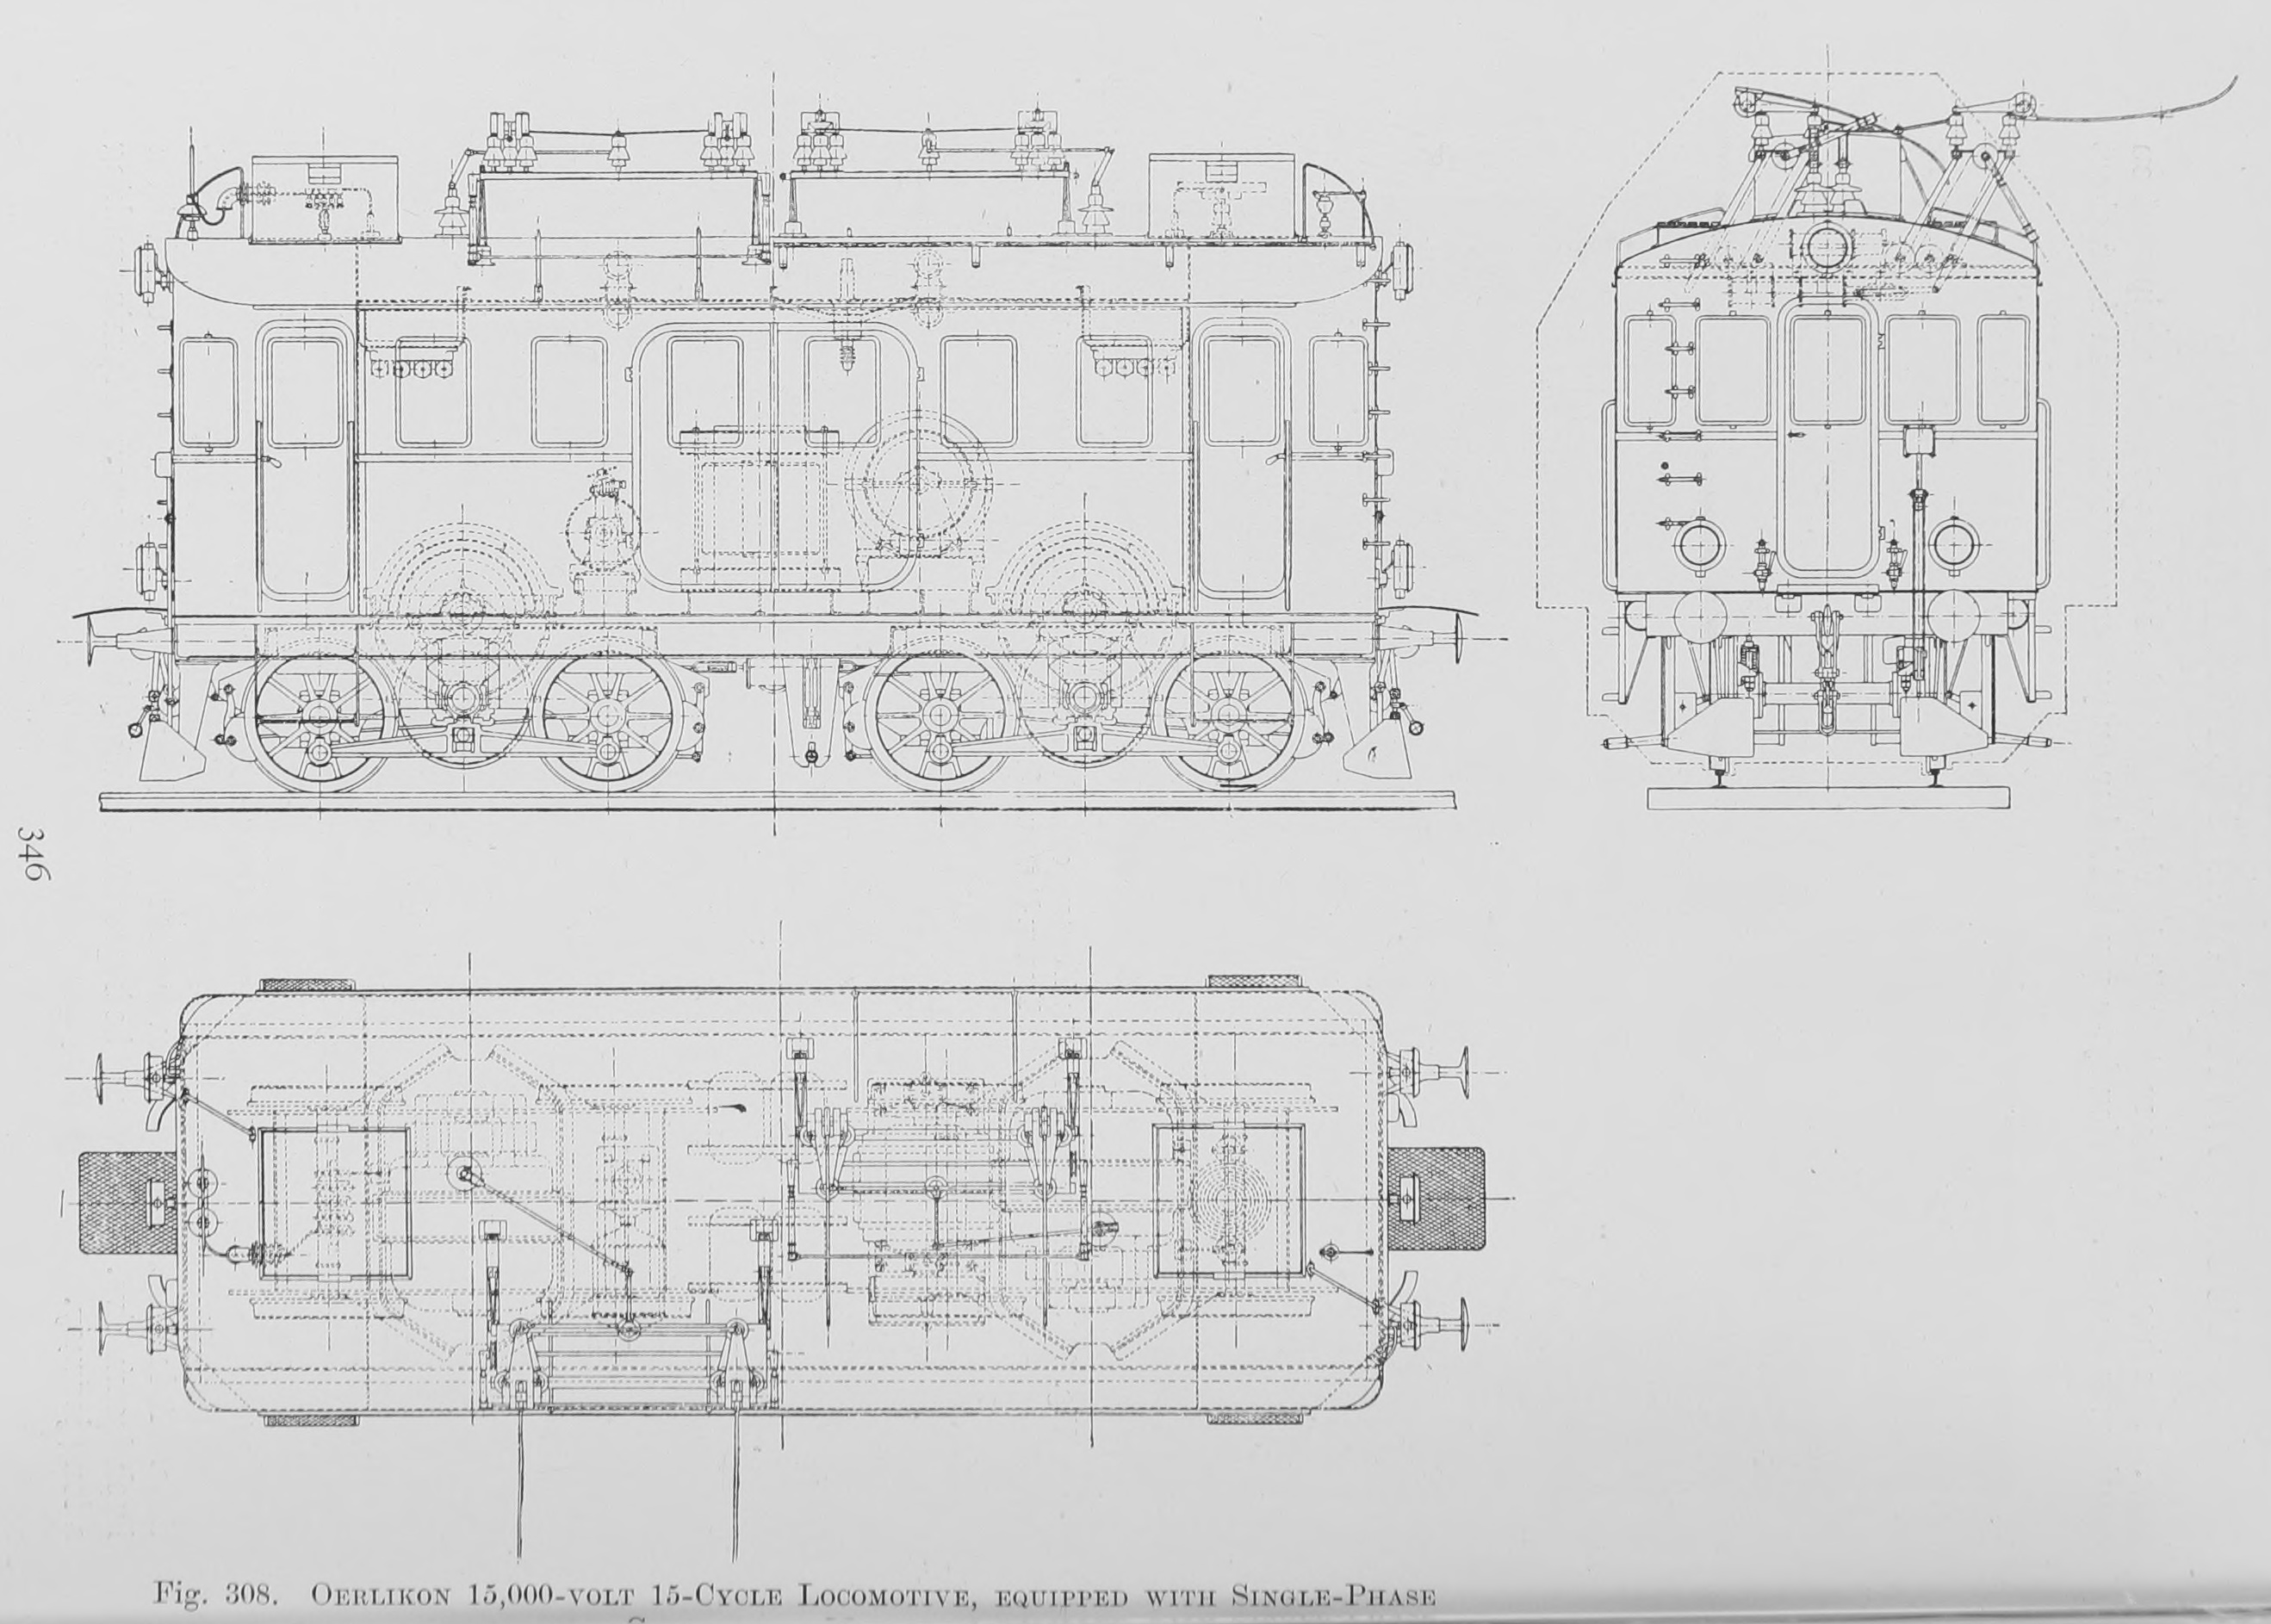 Oerlikon 15,000-volt 15-Cycle Locomotive, equipped with Single-Phase Commutator Motors.jpg